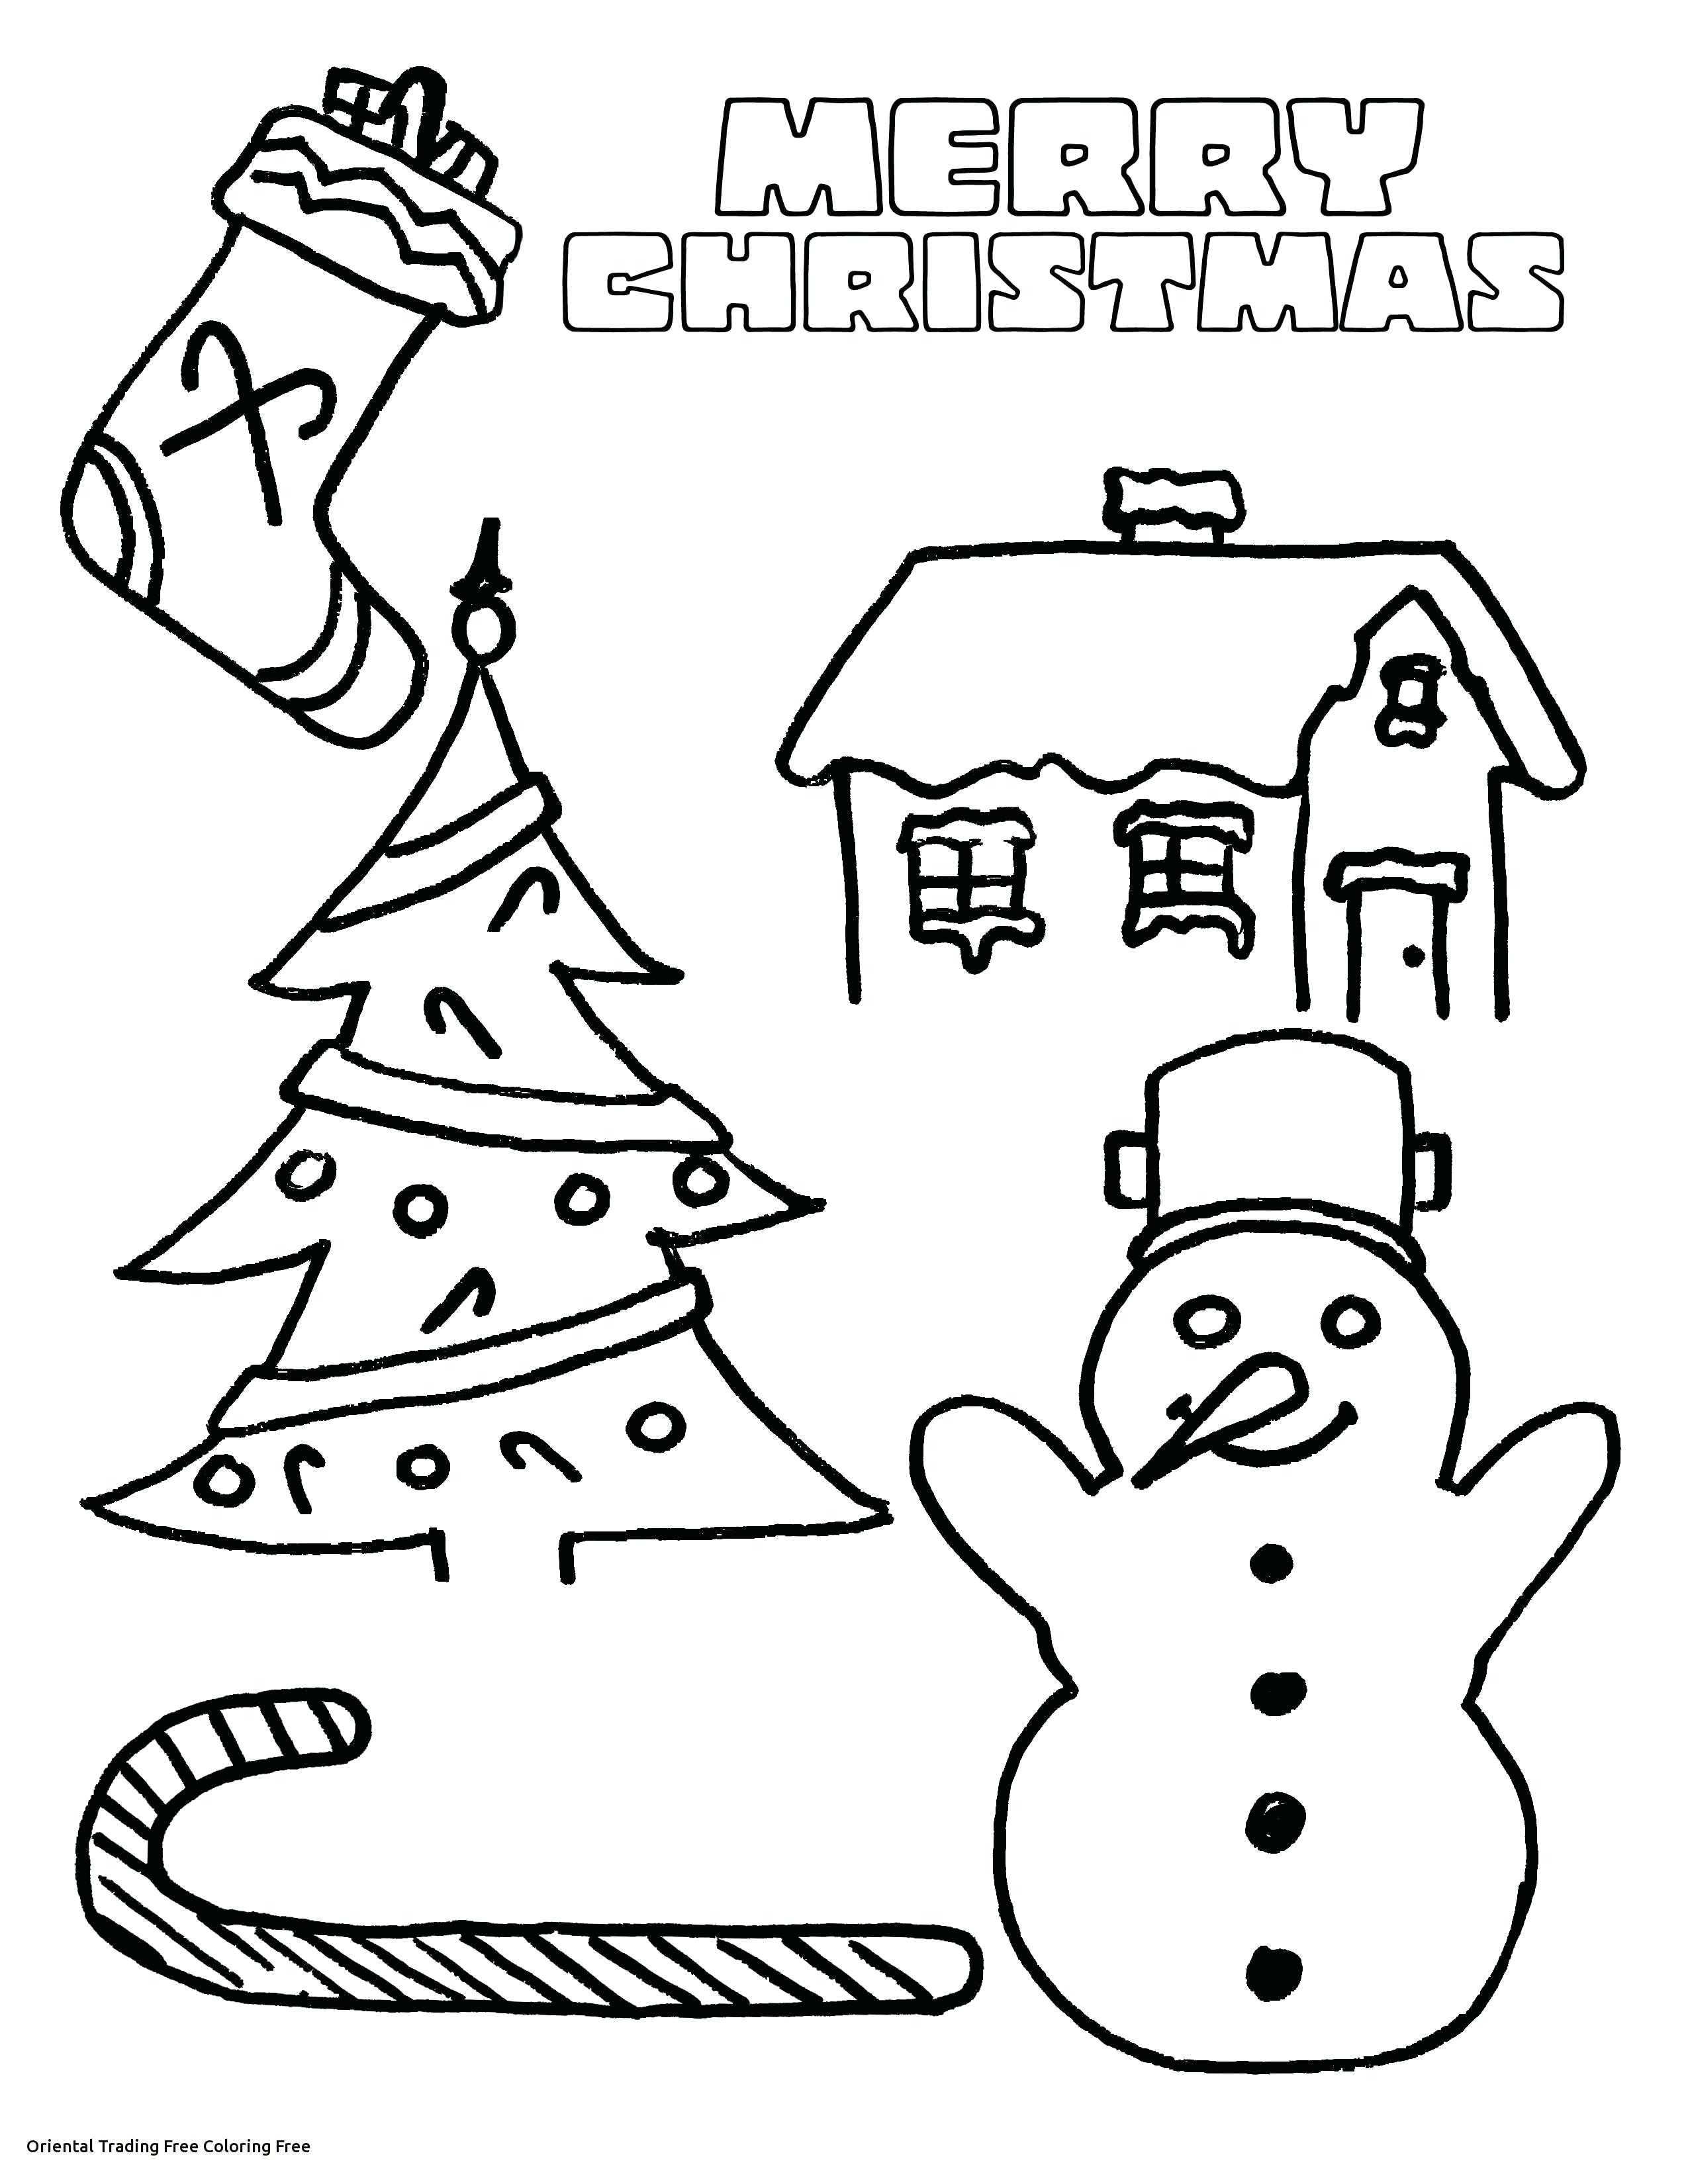 Christmas Coloring Pages Oriental Trading With Free Play Learn